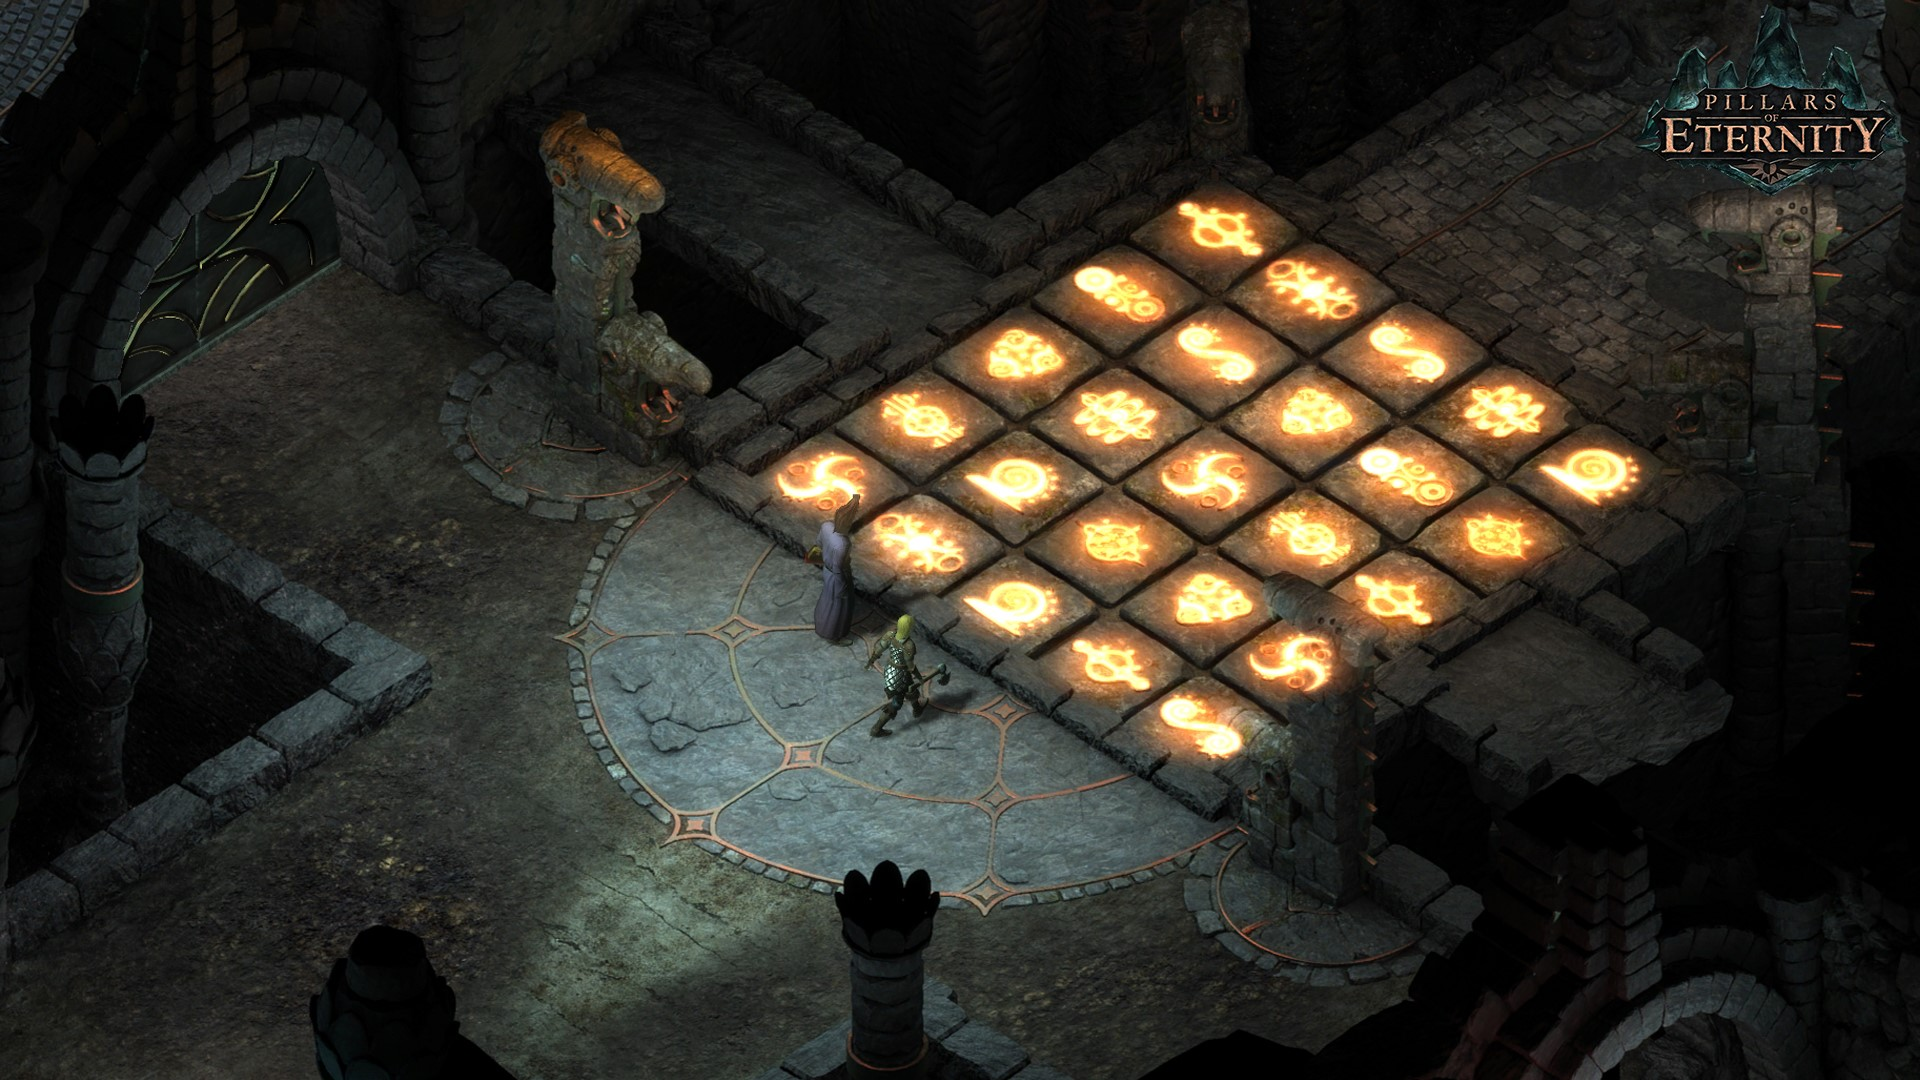 Pillars of Eternity - Hero Edition (Steam Gift RU+CIS)